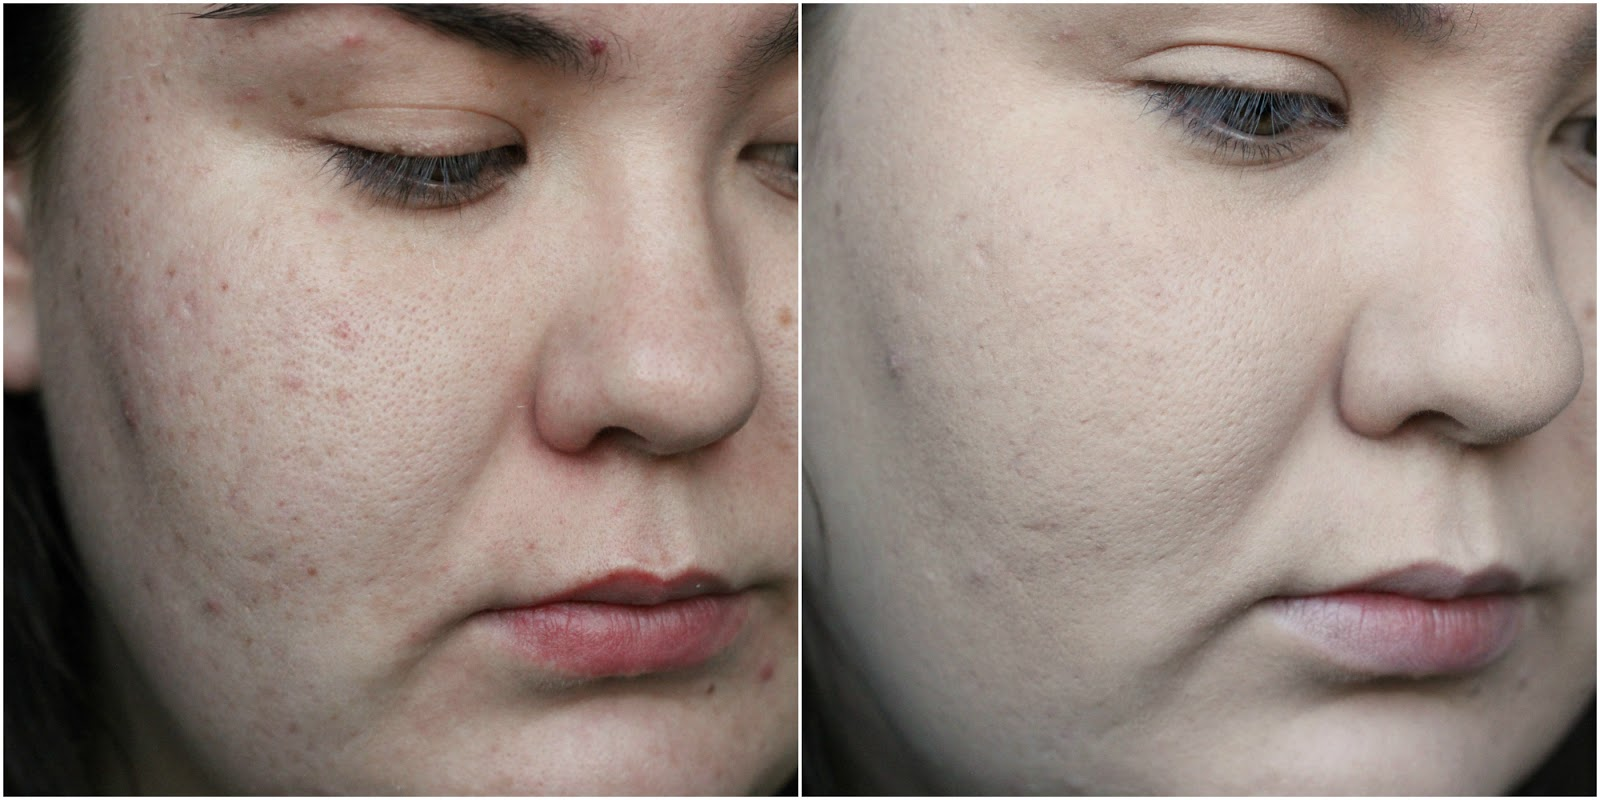 L'Oreal Infallible 24 HourMatte Foundation before and after